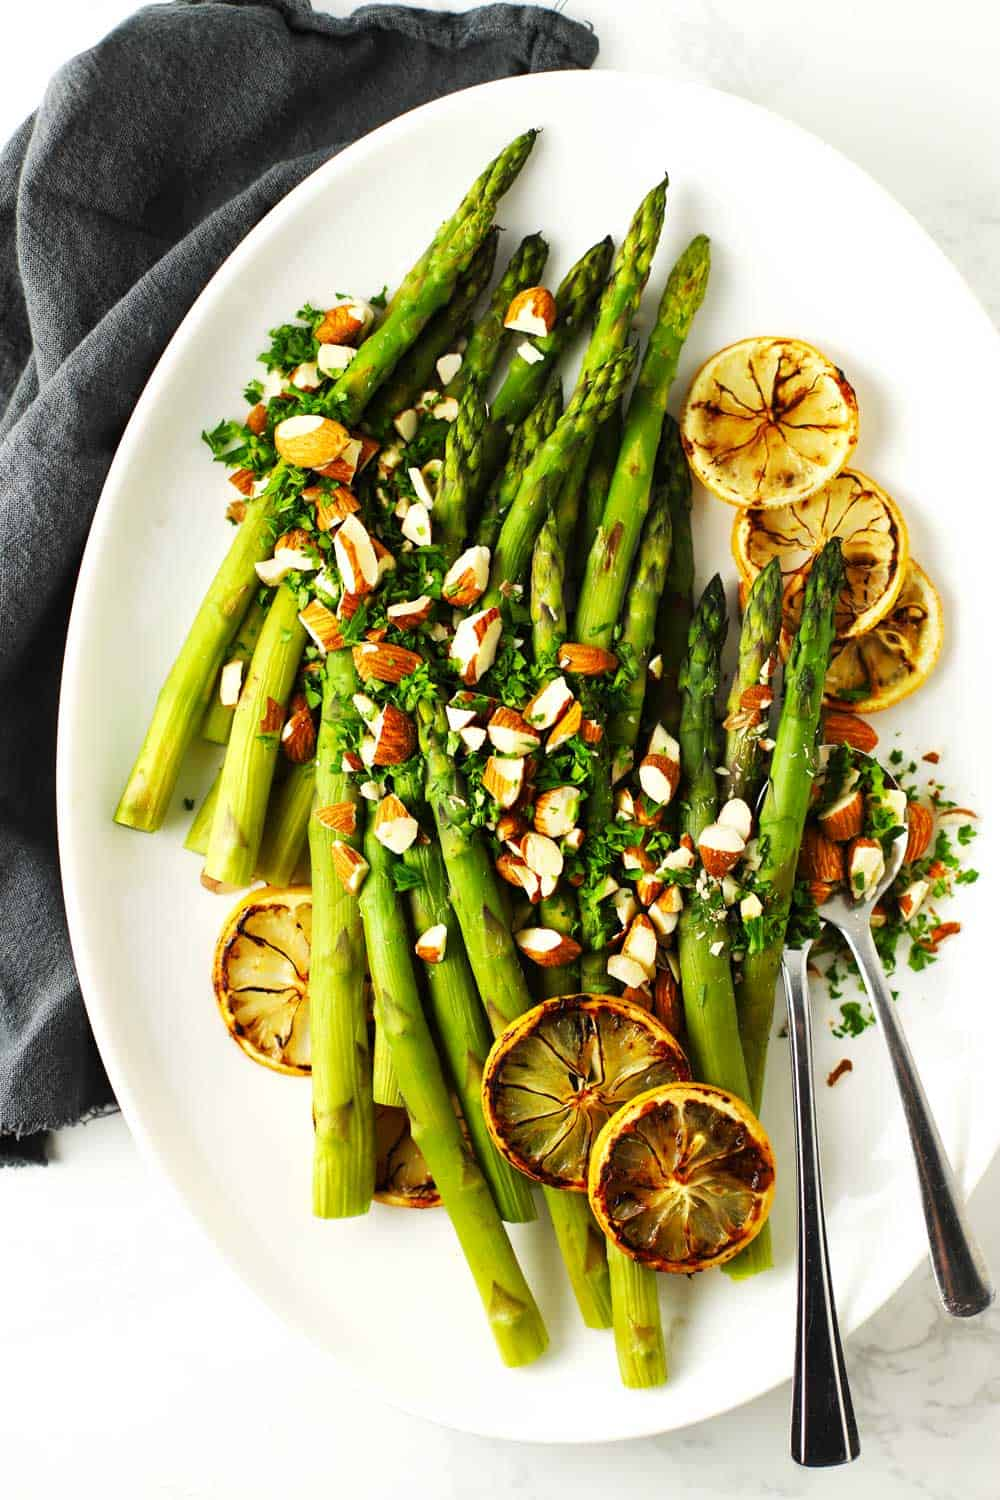 Baked asparagus on white platter with lemon and almonds.